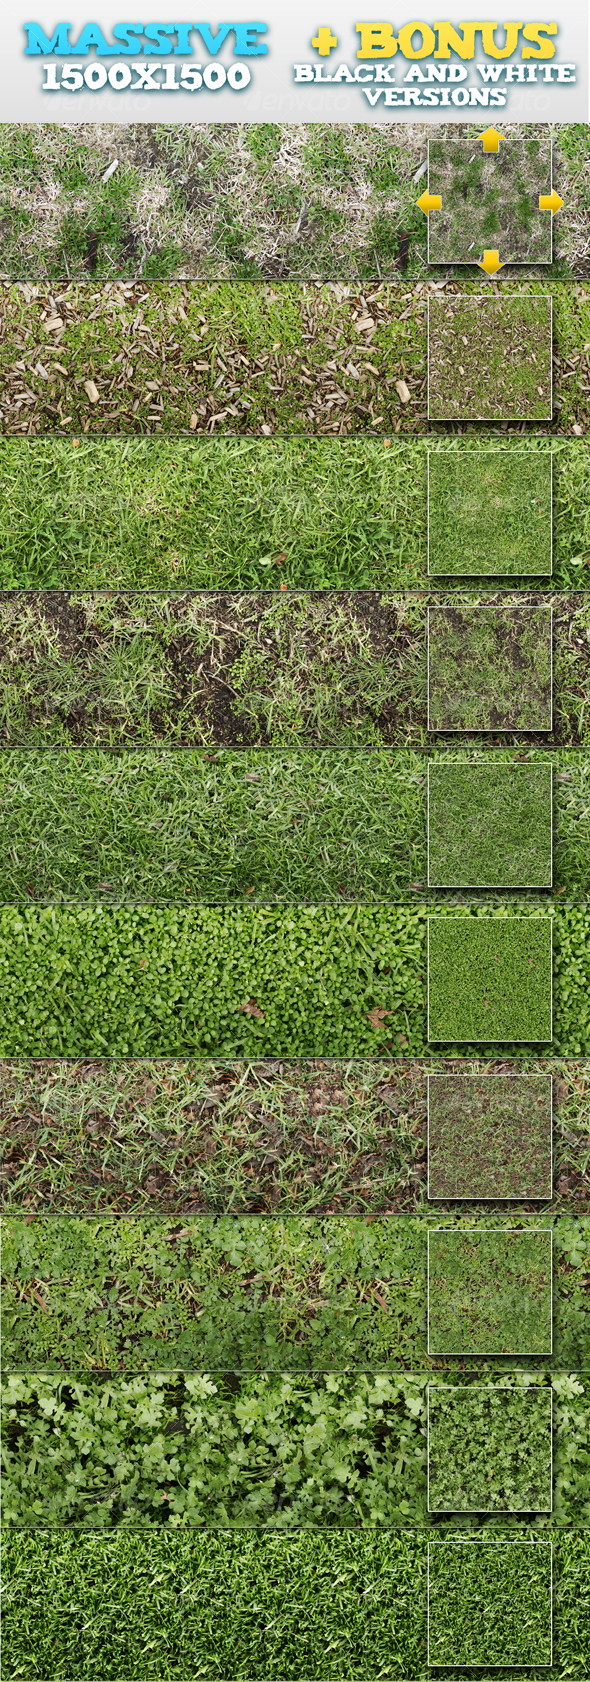 10 Tileable Grass Patterns + BONUSES - Textures / Fills / Patterns Photoshop